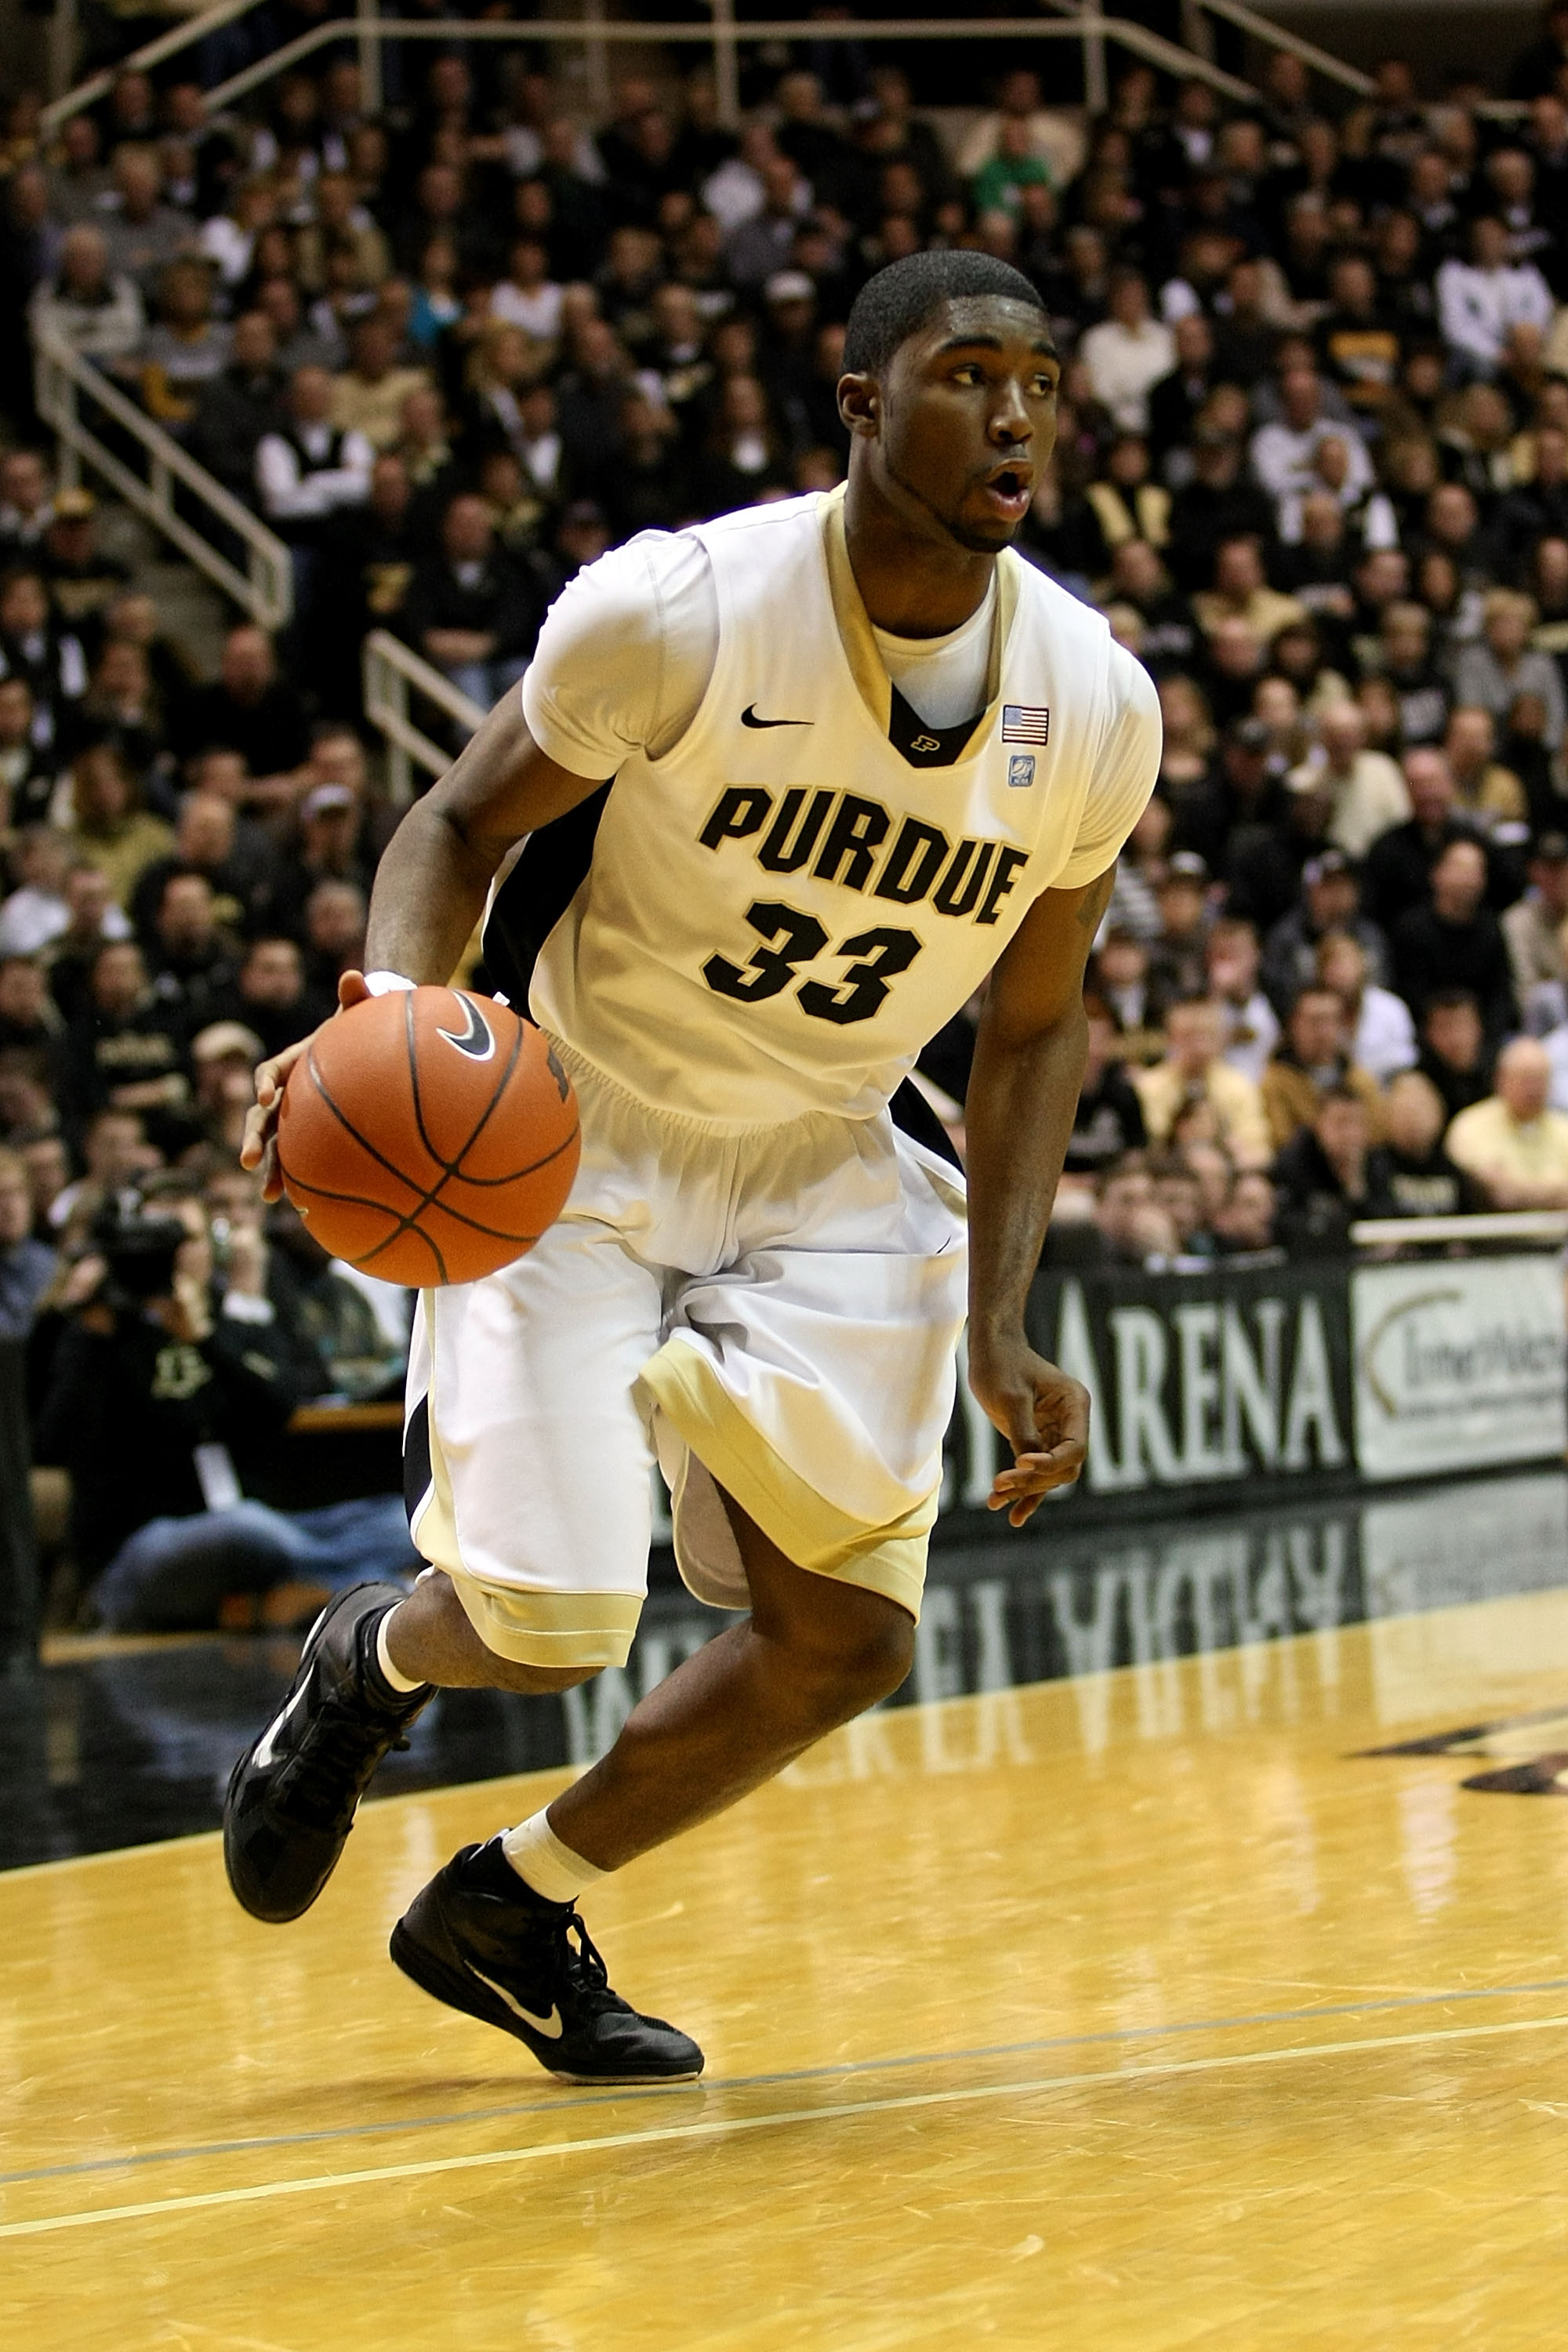 WEST LAFAYETTE, IN - JANUARY 09:  E'Twaun Moore #33 of the Purdue Boilermakers drives against the Iowa Hawkeyes at Mackey Arena on January 9, 2011 in West Lafayette, Indiana. Purdue won 75-52. (Photo by Chris Chambers/Getty Images)